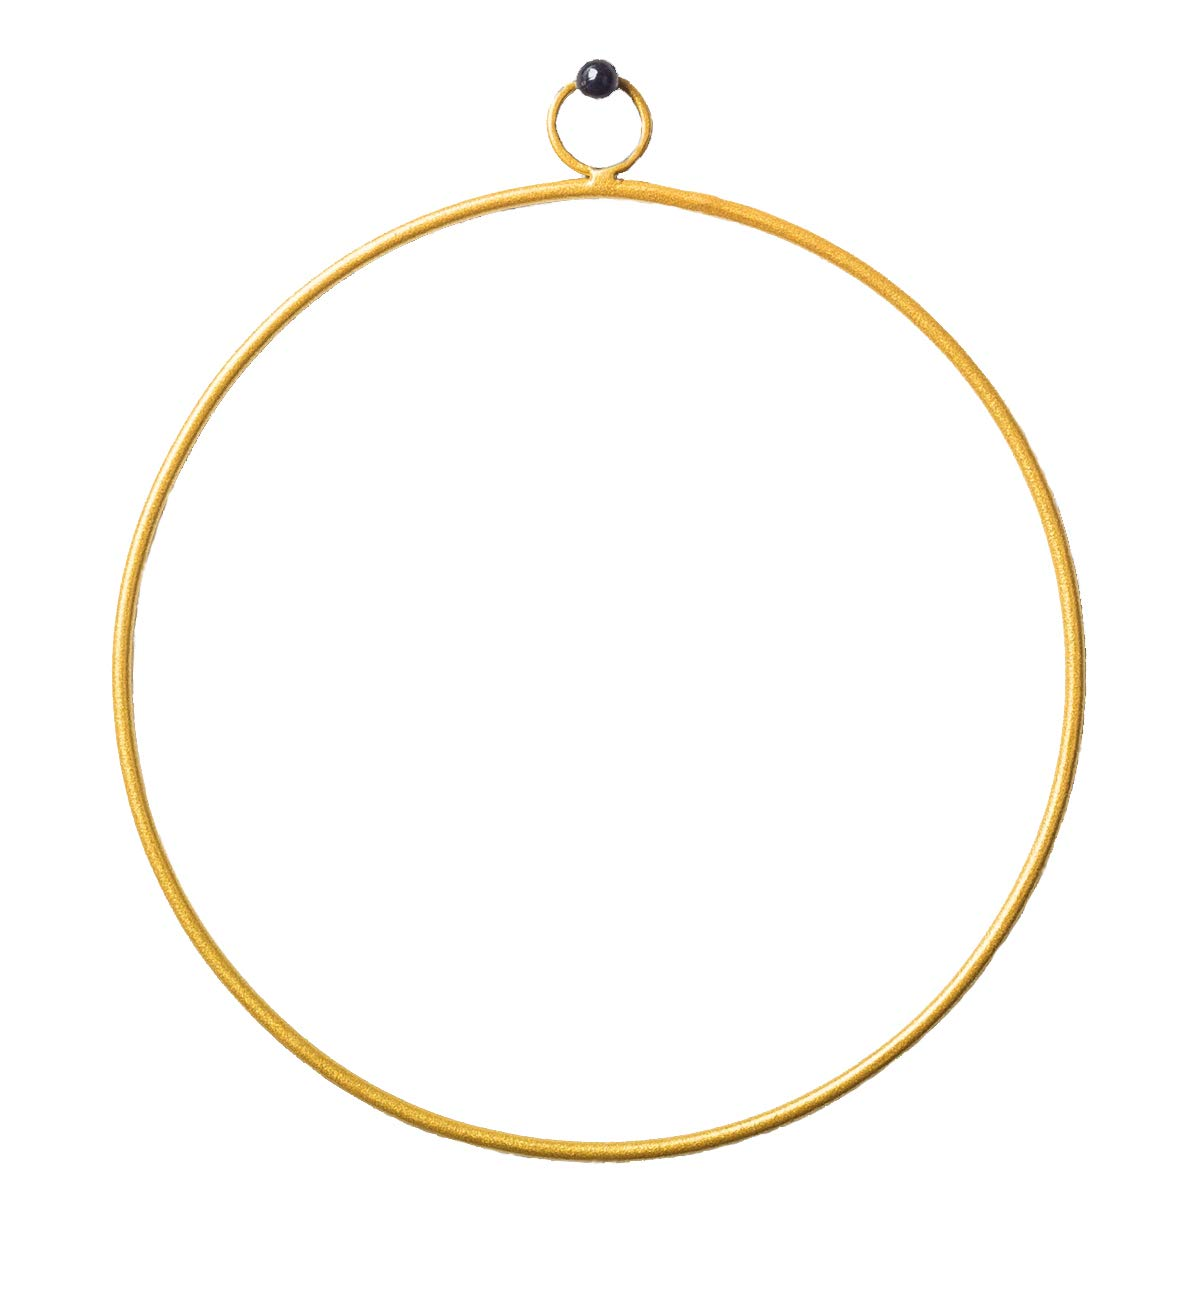 and Boho Styles Triangle hrubie Modern Gold Finished Metal Wreath Frame Dreamcatcher Rings and Macrame Hoops in Farmhouse Flower Arrangements Ideal for Crafts 8 in